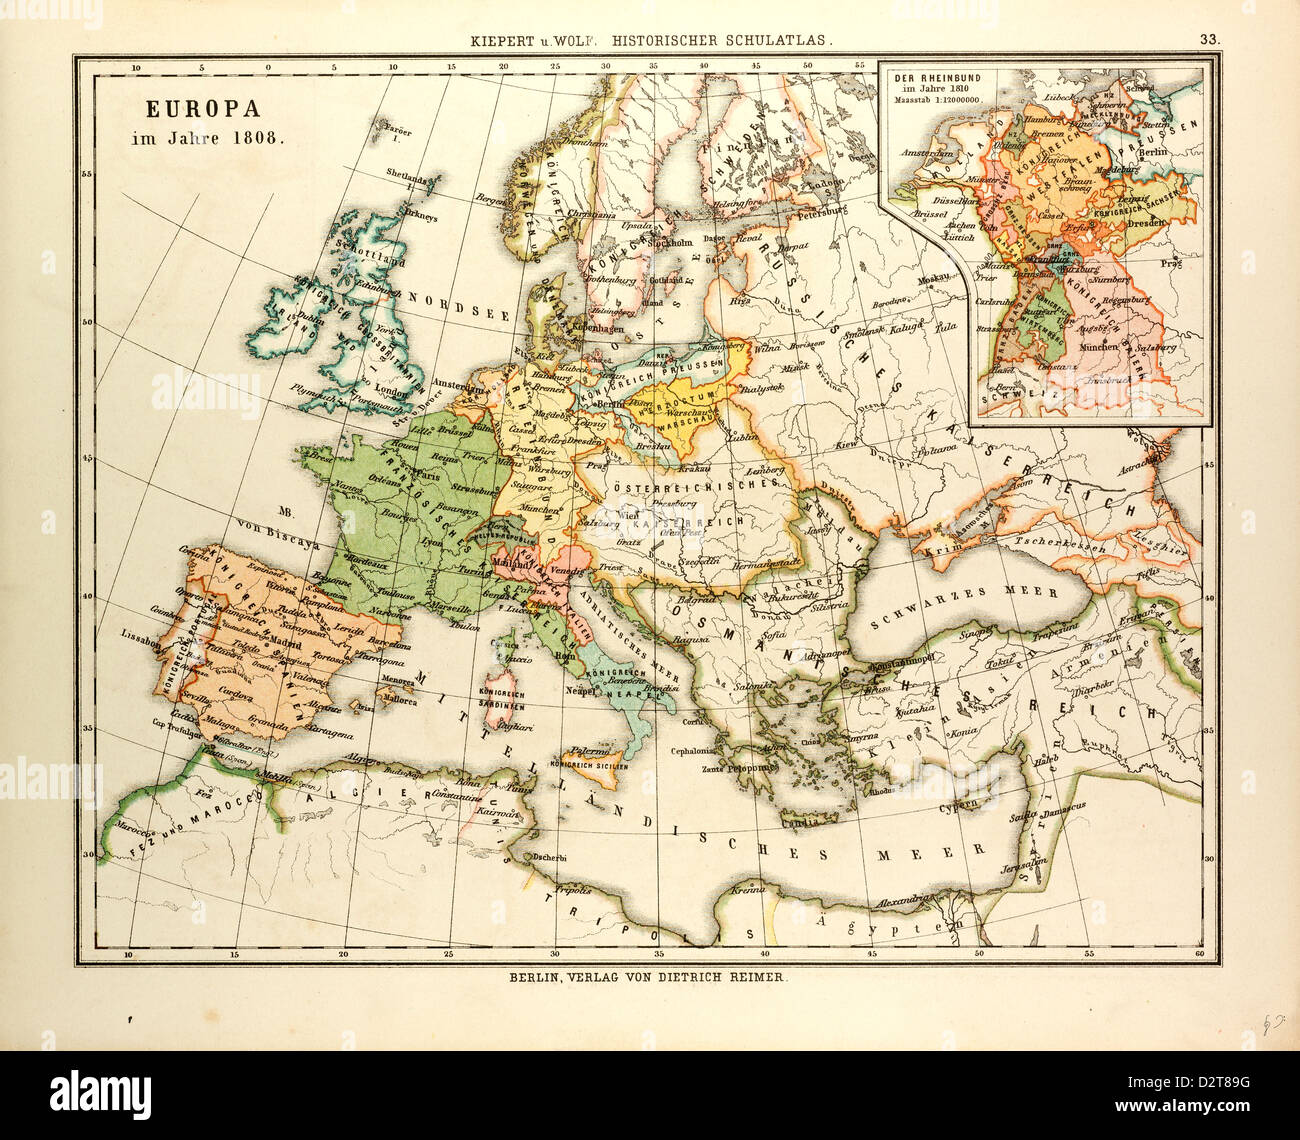 MAP OF EUROPE IN 1808 - Stock Image